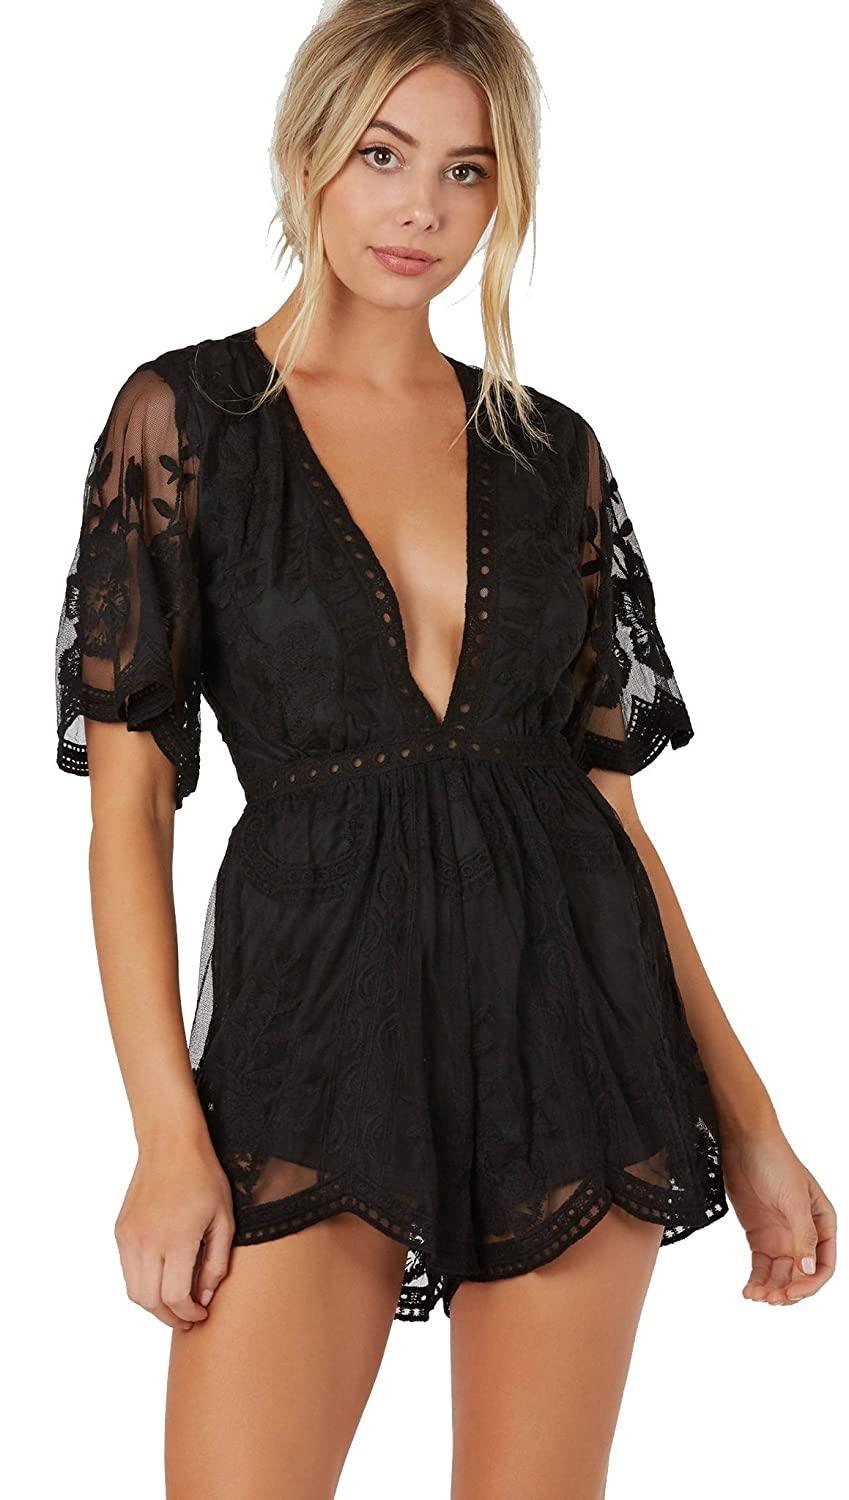 99f9739f4394 Honey Punch Antique Embroidered Crochet Deep V Neck Romper Black Lace   Amazon.ca  Clothing   Accessories